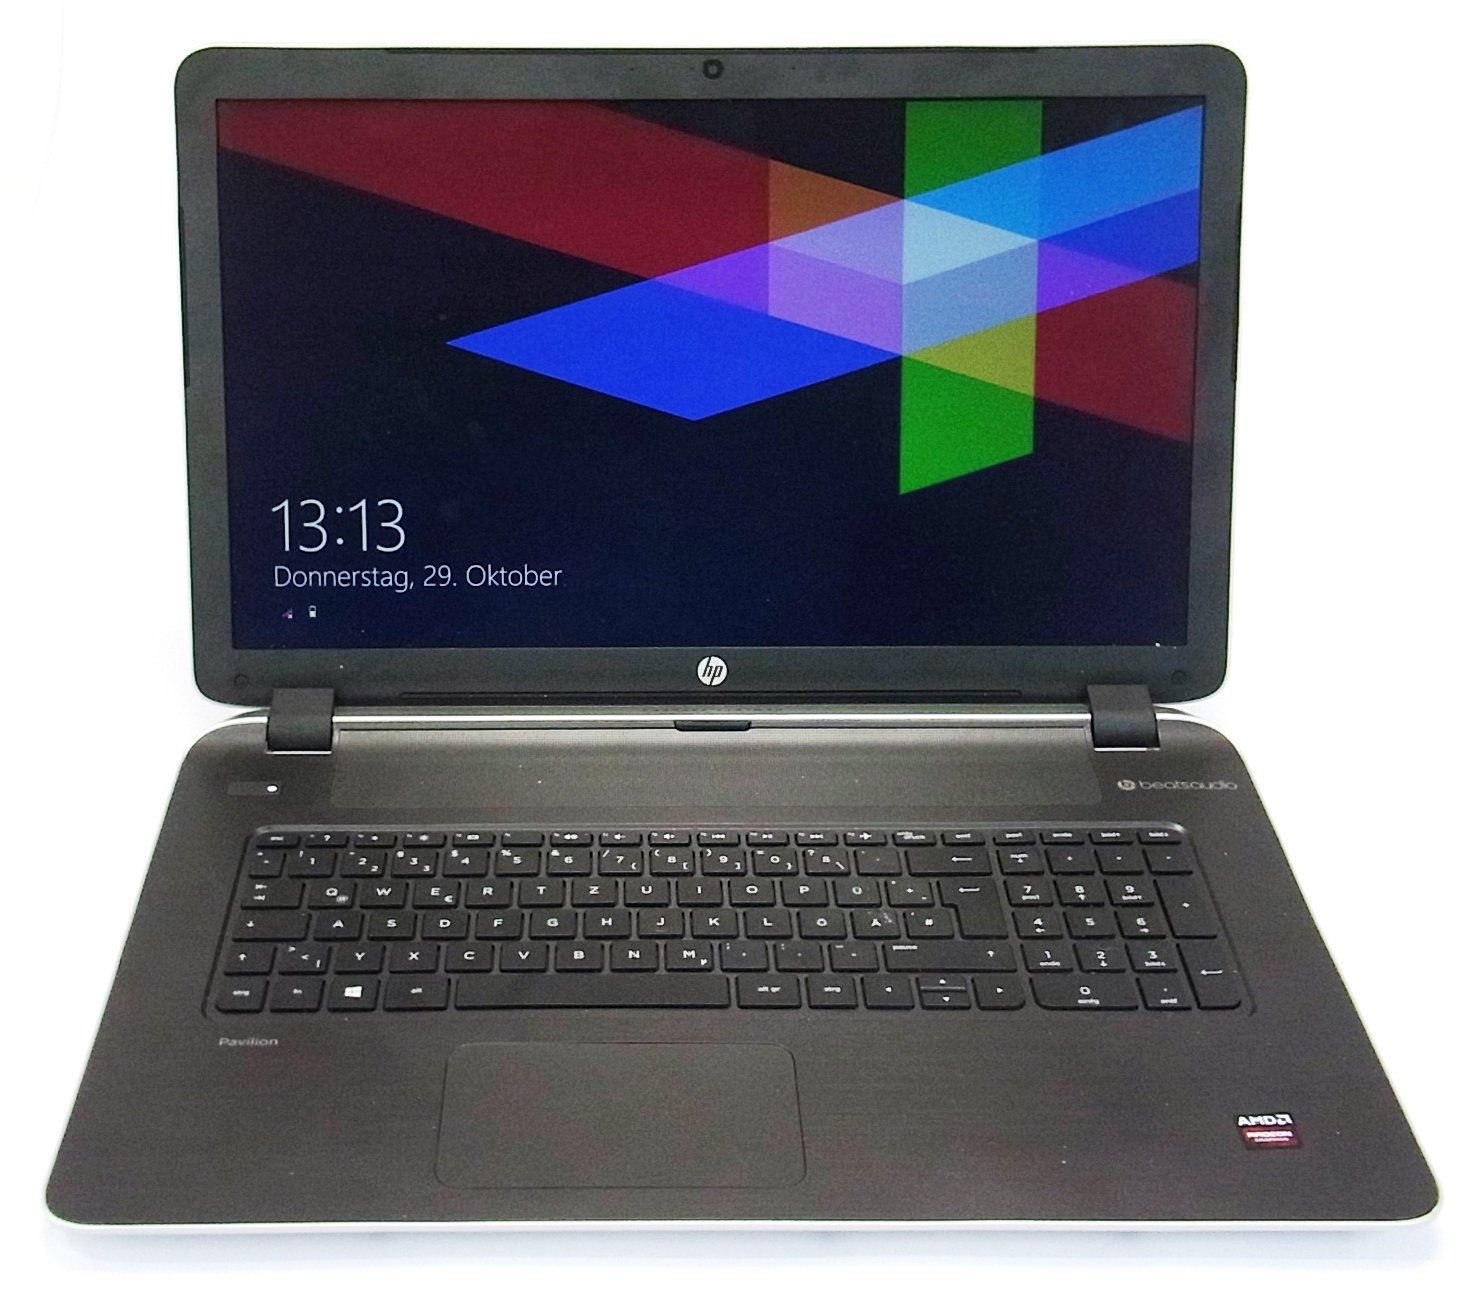 hp pavilion 17 f025ng notebook pc laptop computer 8gb ram. Black Bedroom Furniture Sets. Home Design Ideas